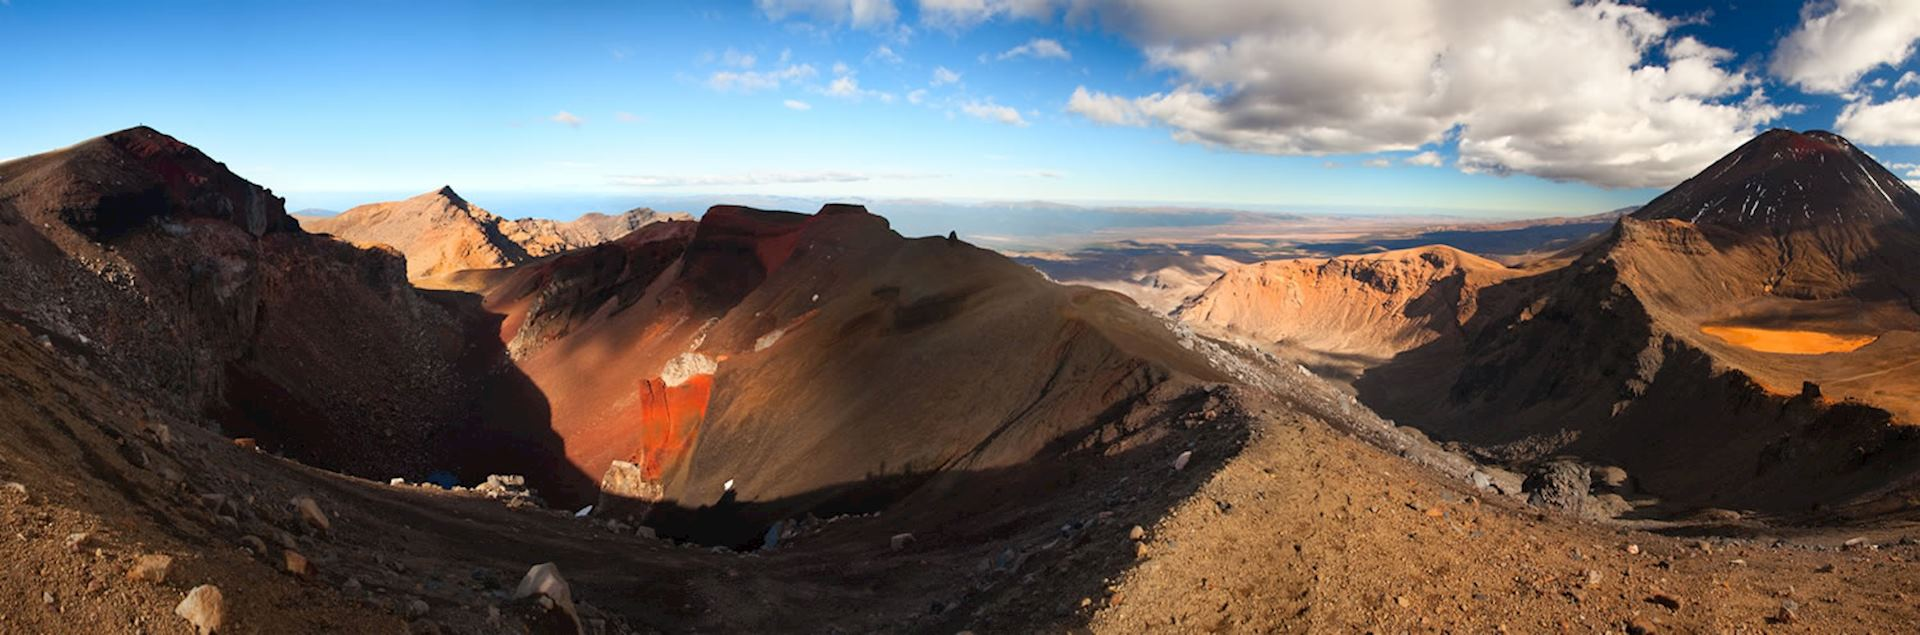 Mount Ngauruhoe, Tongariro National Park, North Island